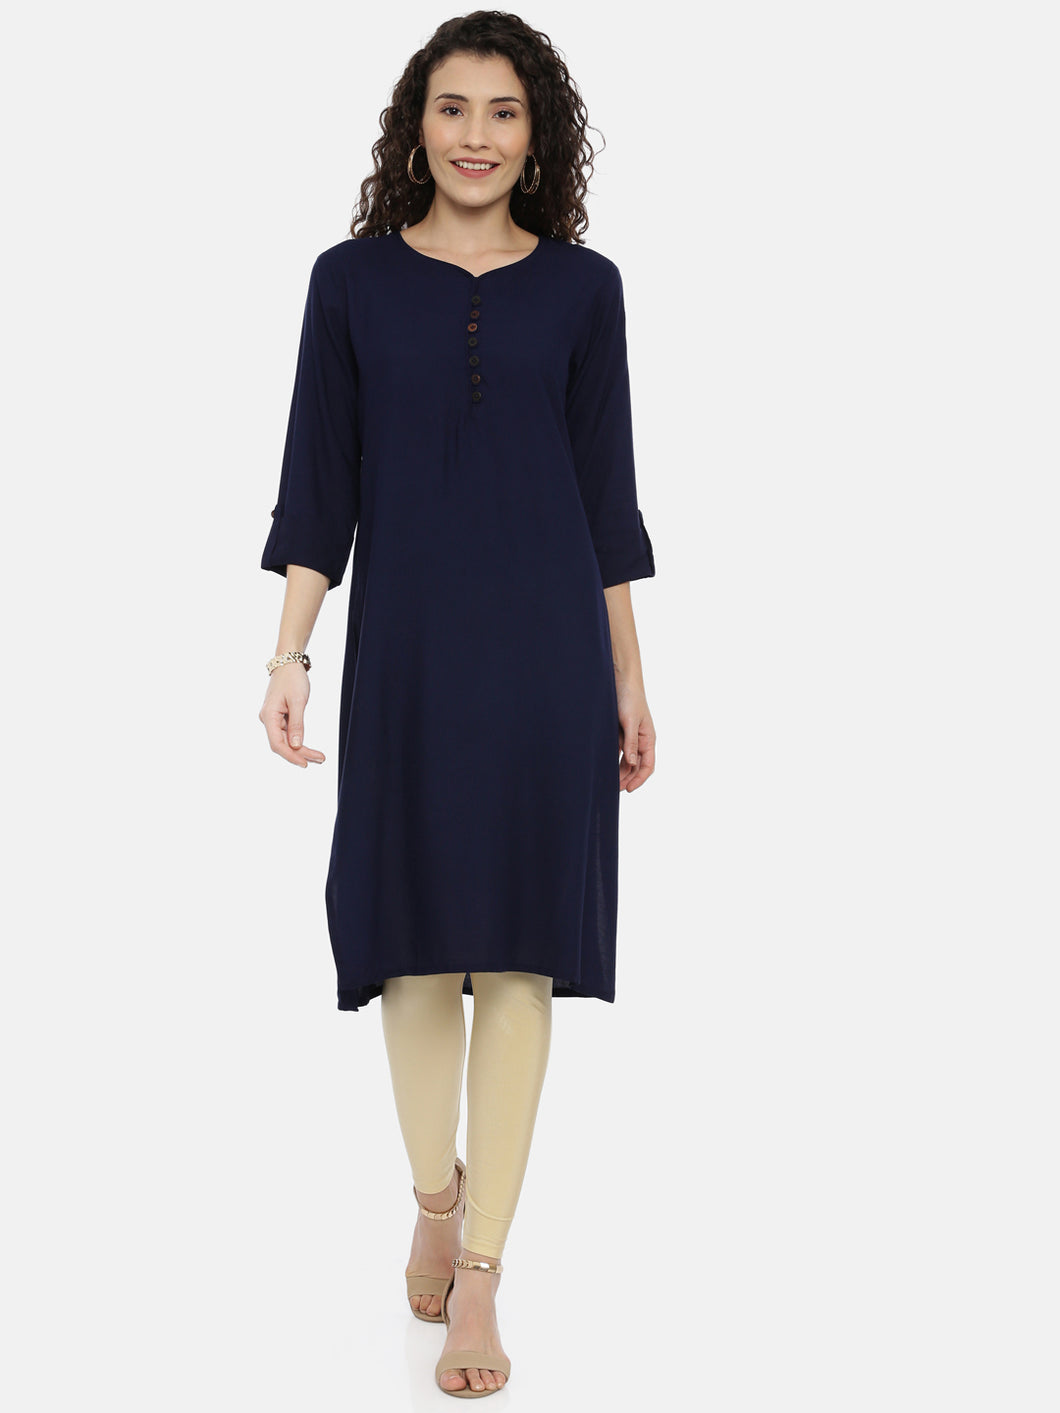 Arana Women's Plain Navy Blue Rayon Straight Cut kurti With Roll Up Sleeve